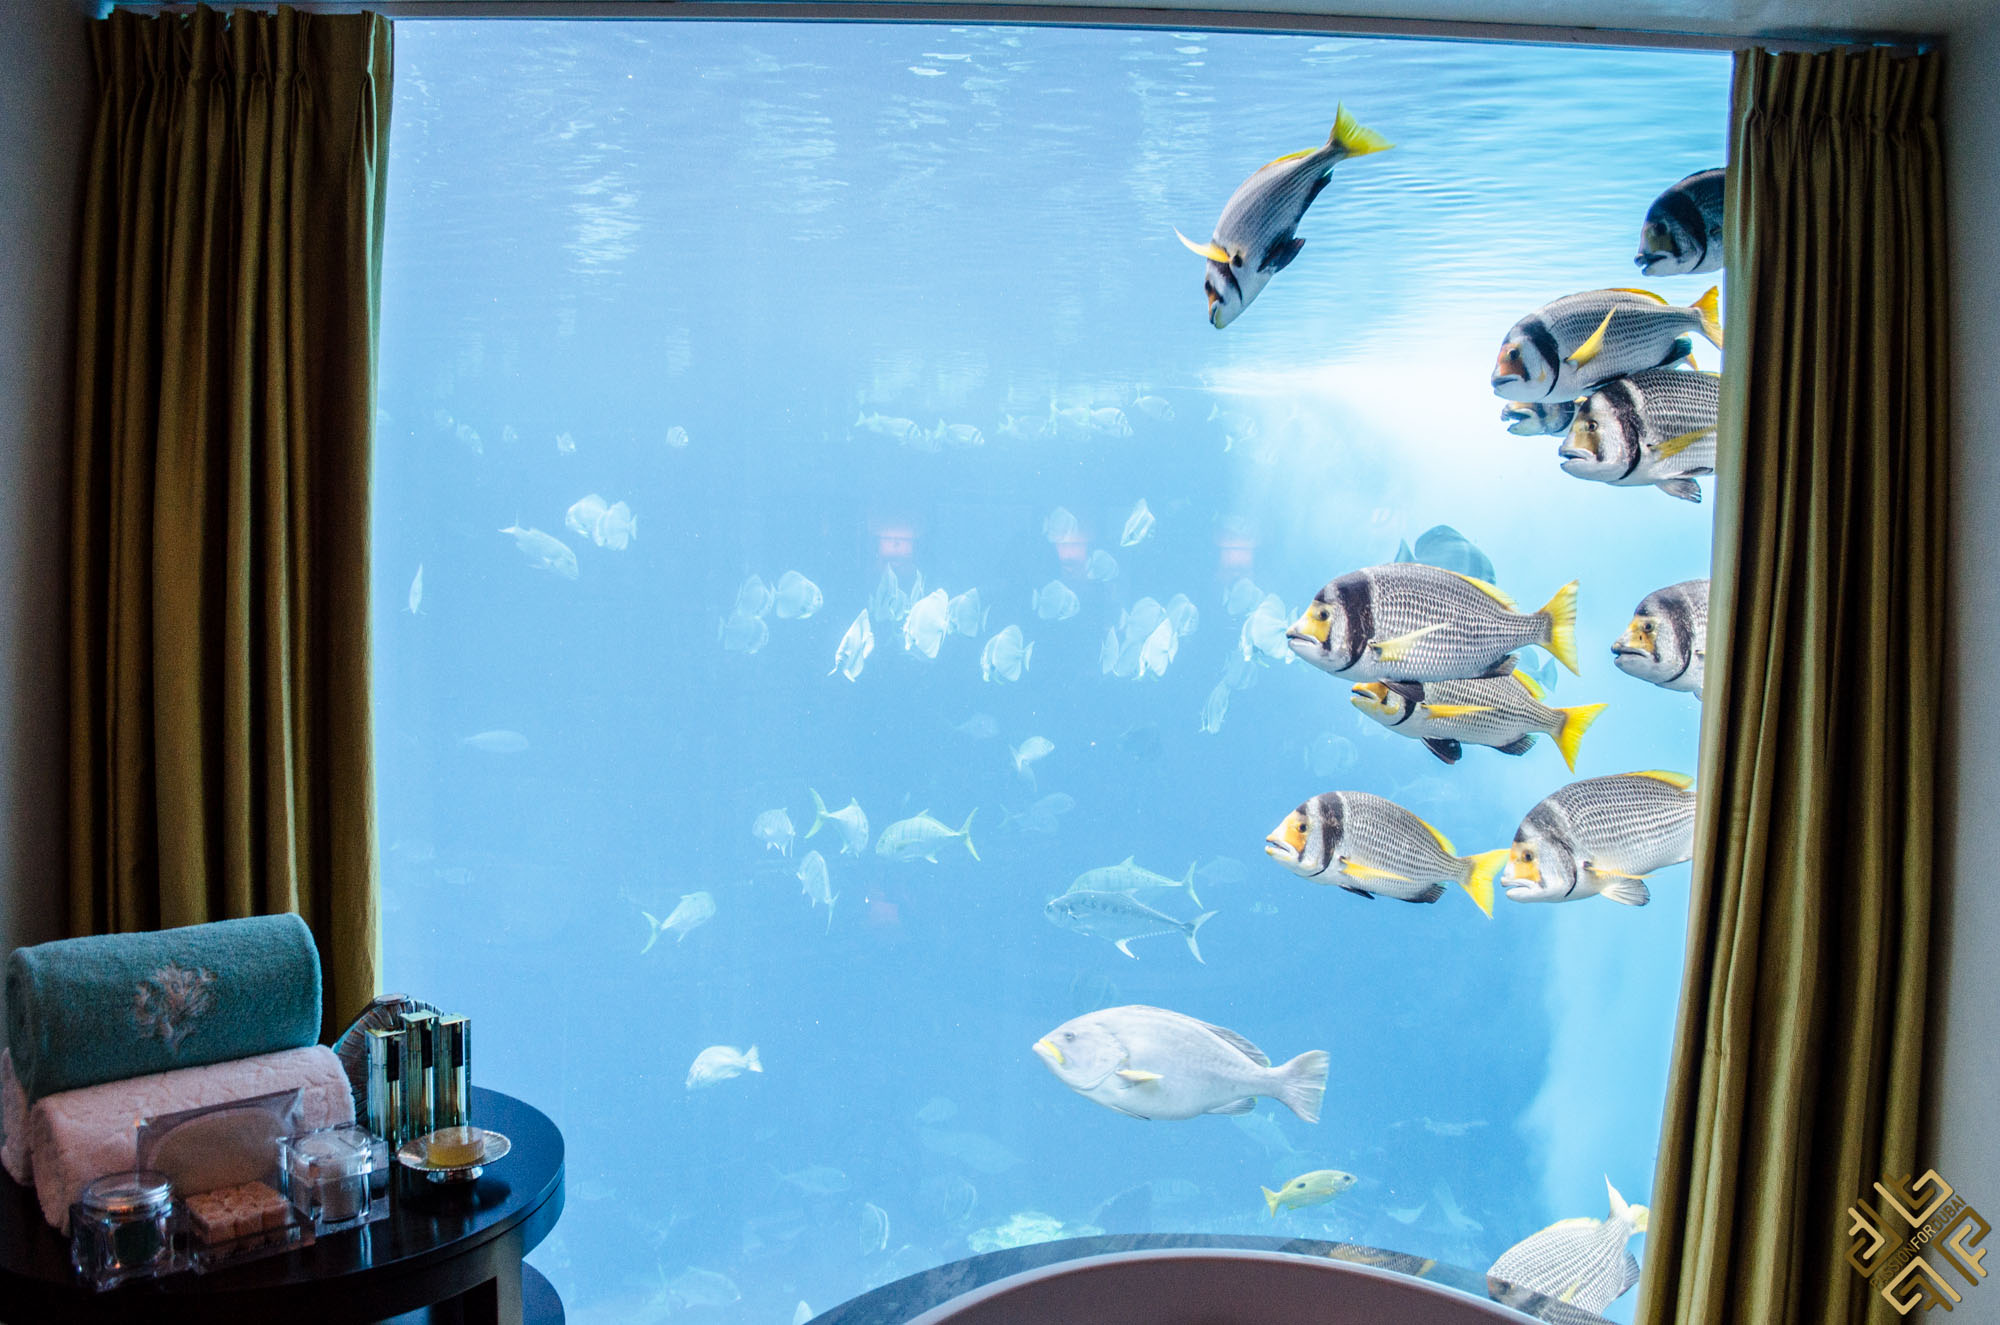 atlantis-the-palm-underwater-suite-3